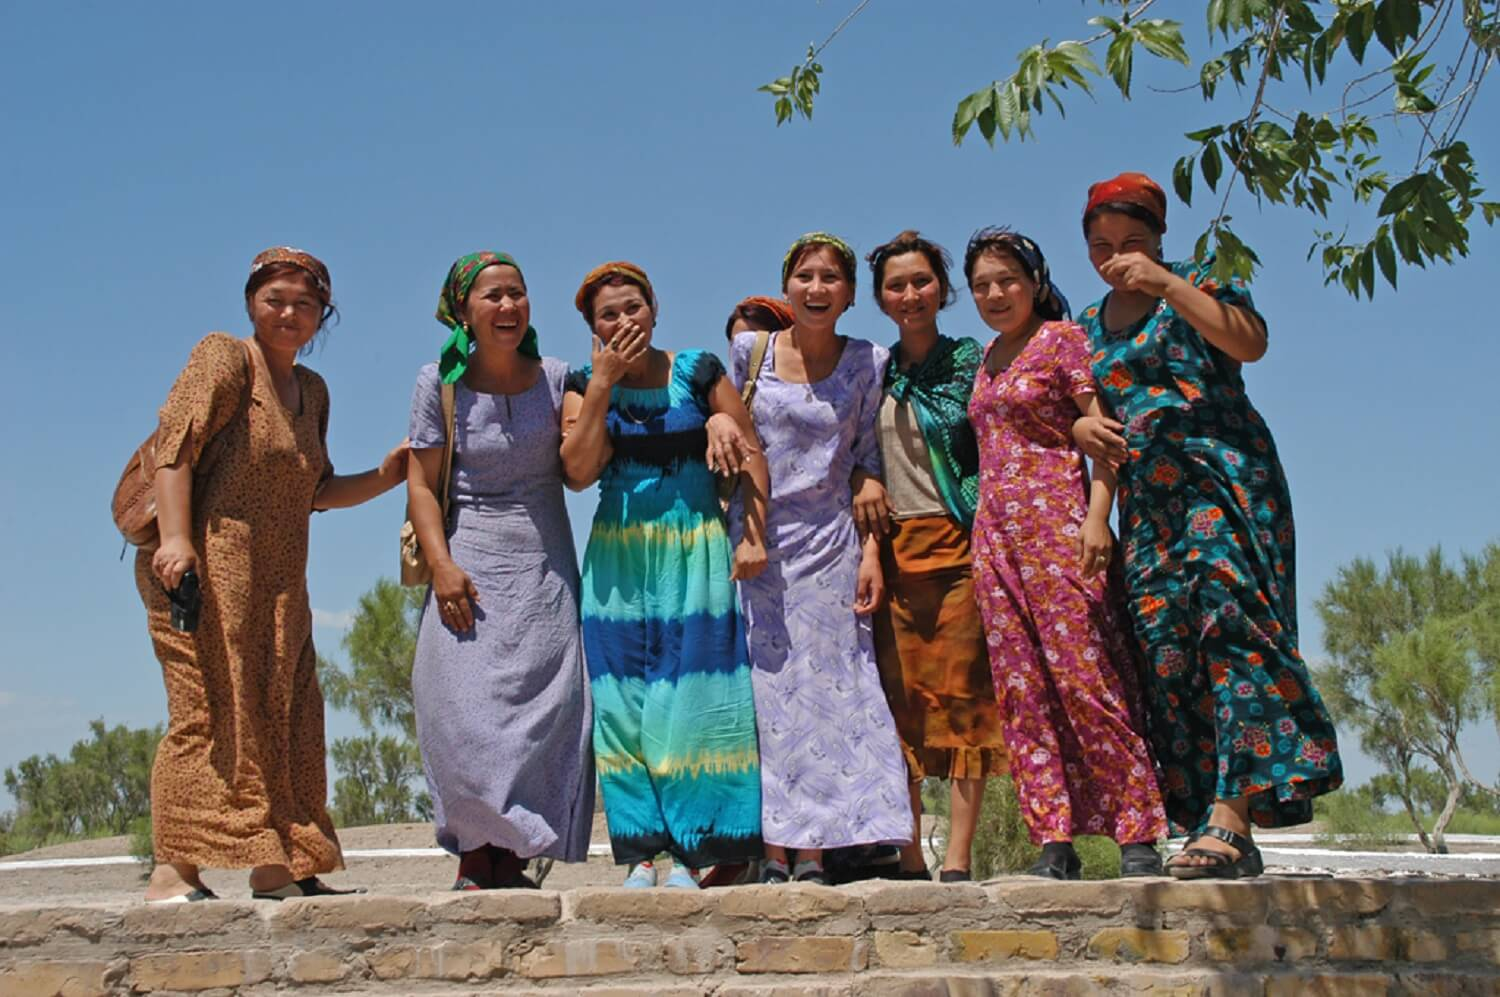 Turkmen women in traditional dresses